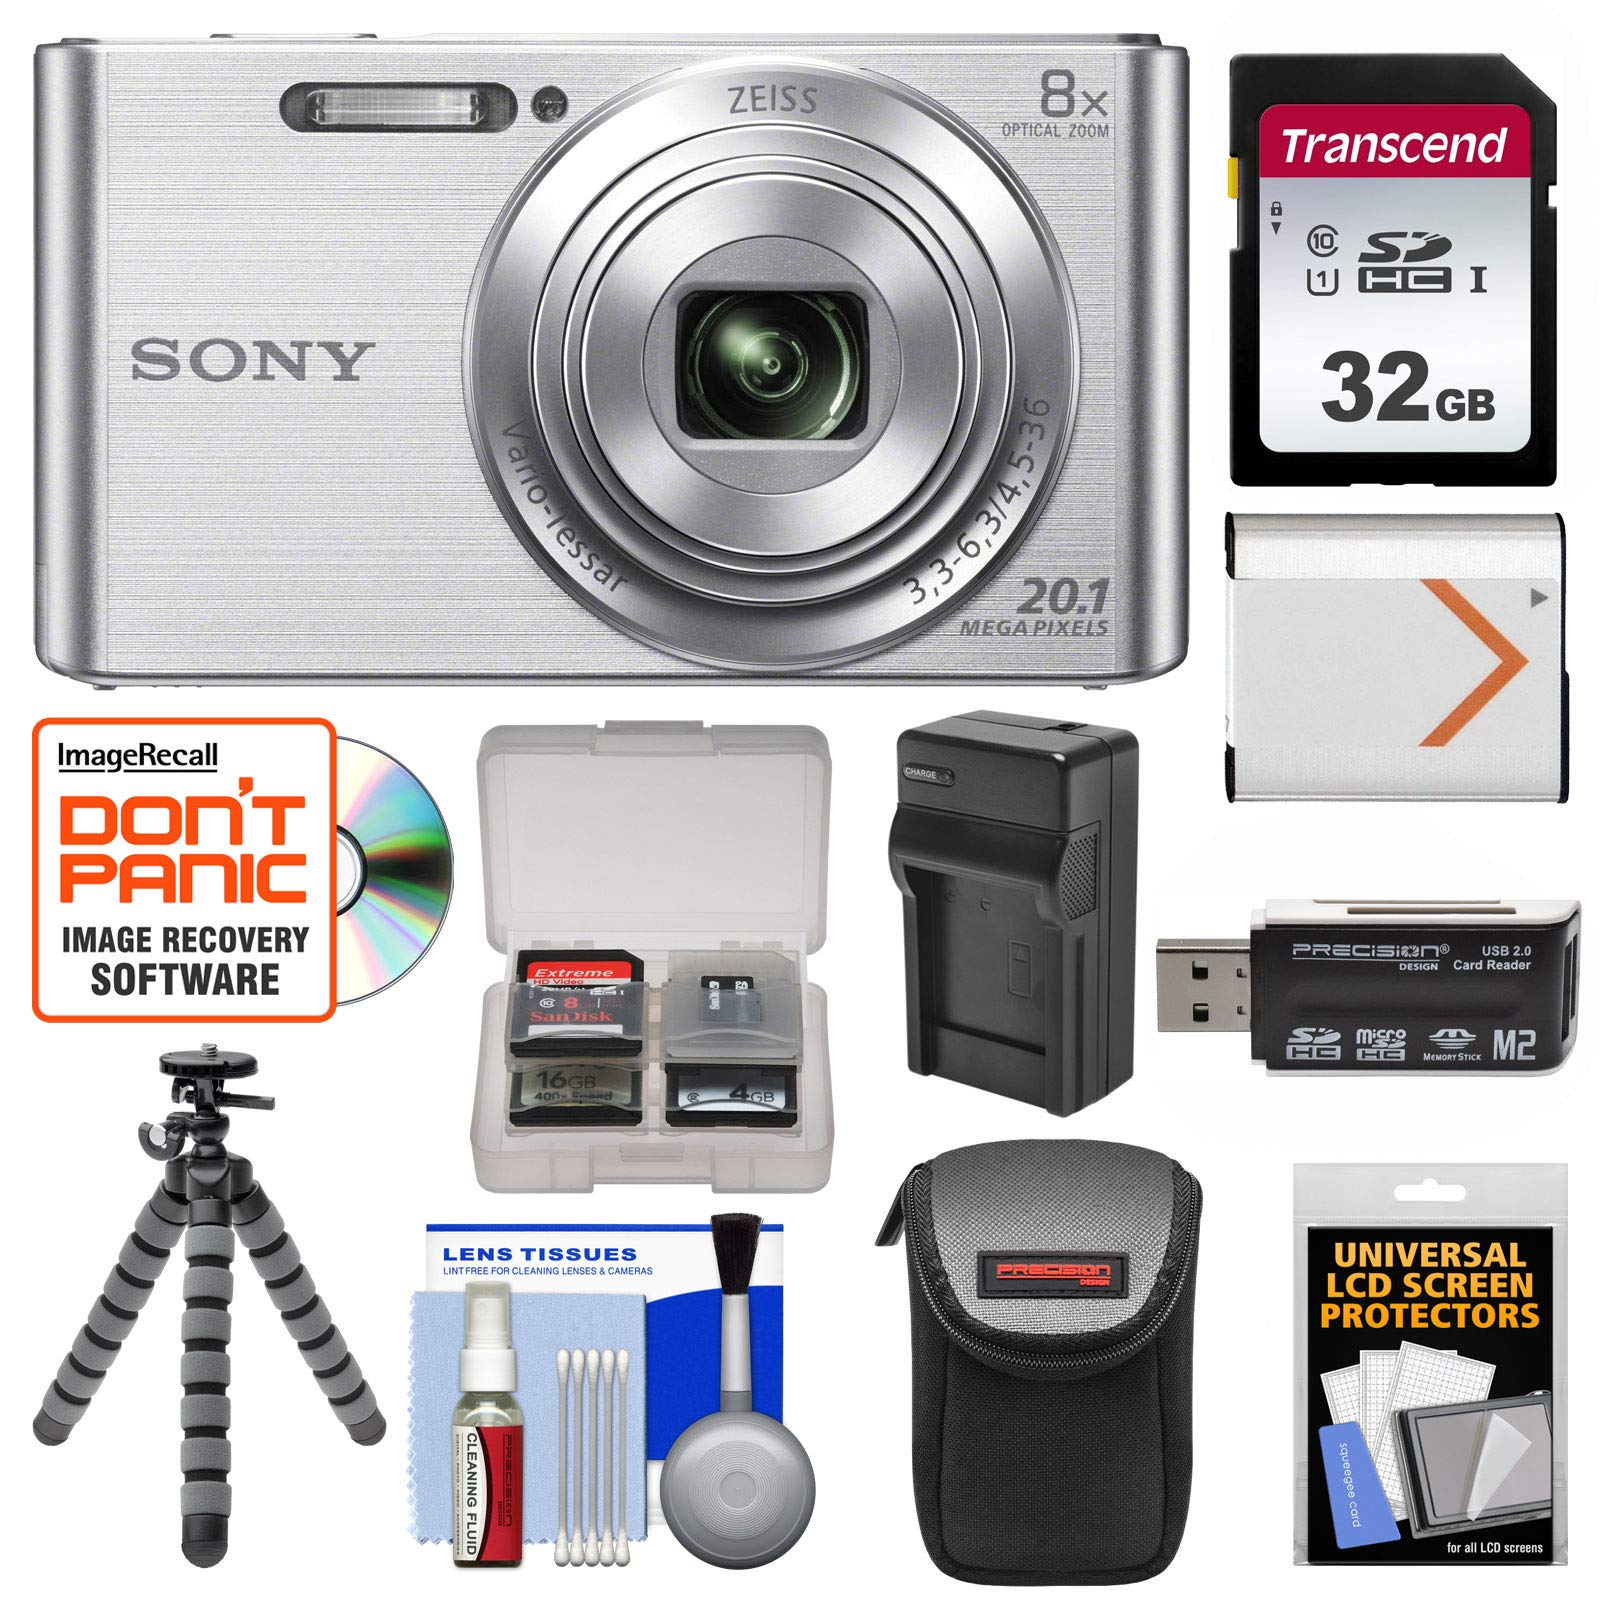 Sony Cyber-Shot DSC-W830 Digital Camera (Silver) with 32GB Card + Case + Battery & Charger + Flex Tripod + Accessory Kit by Sony